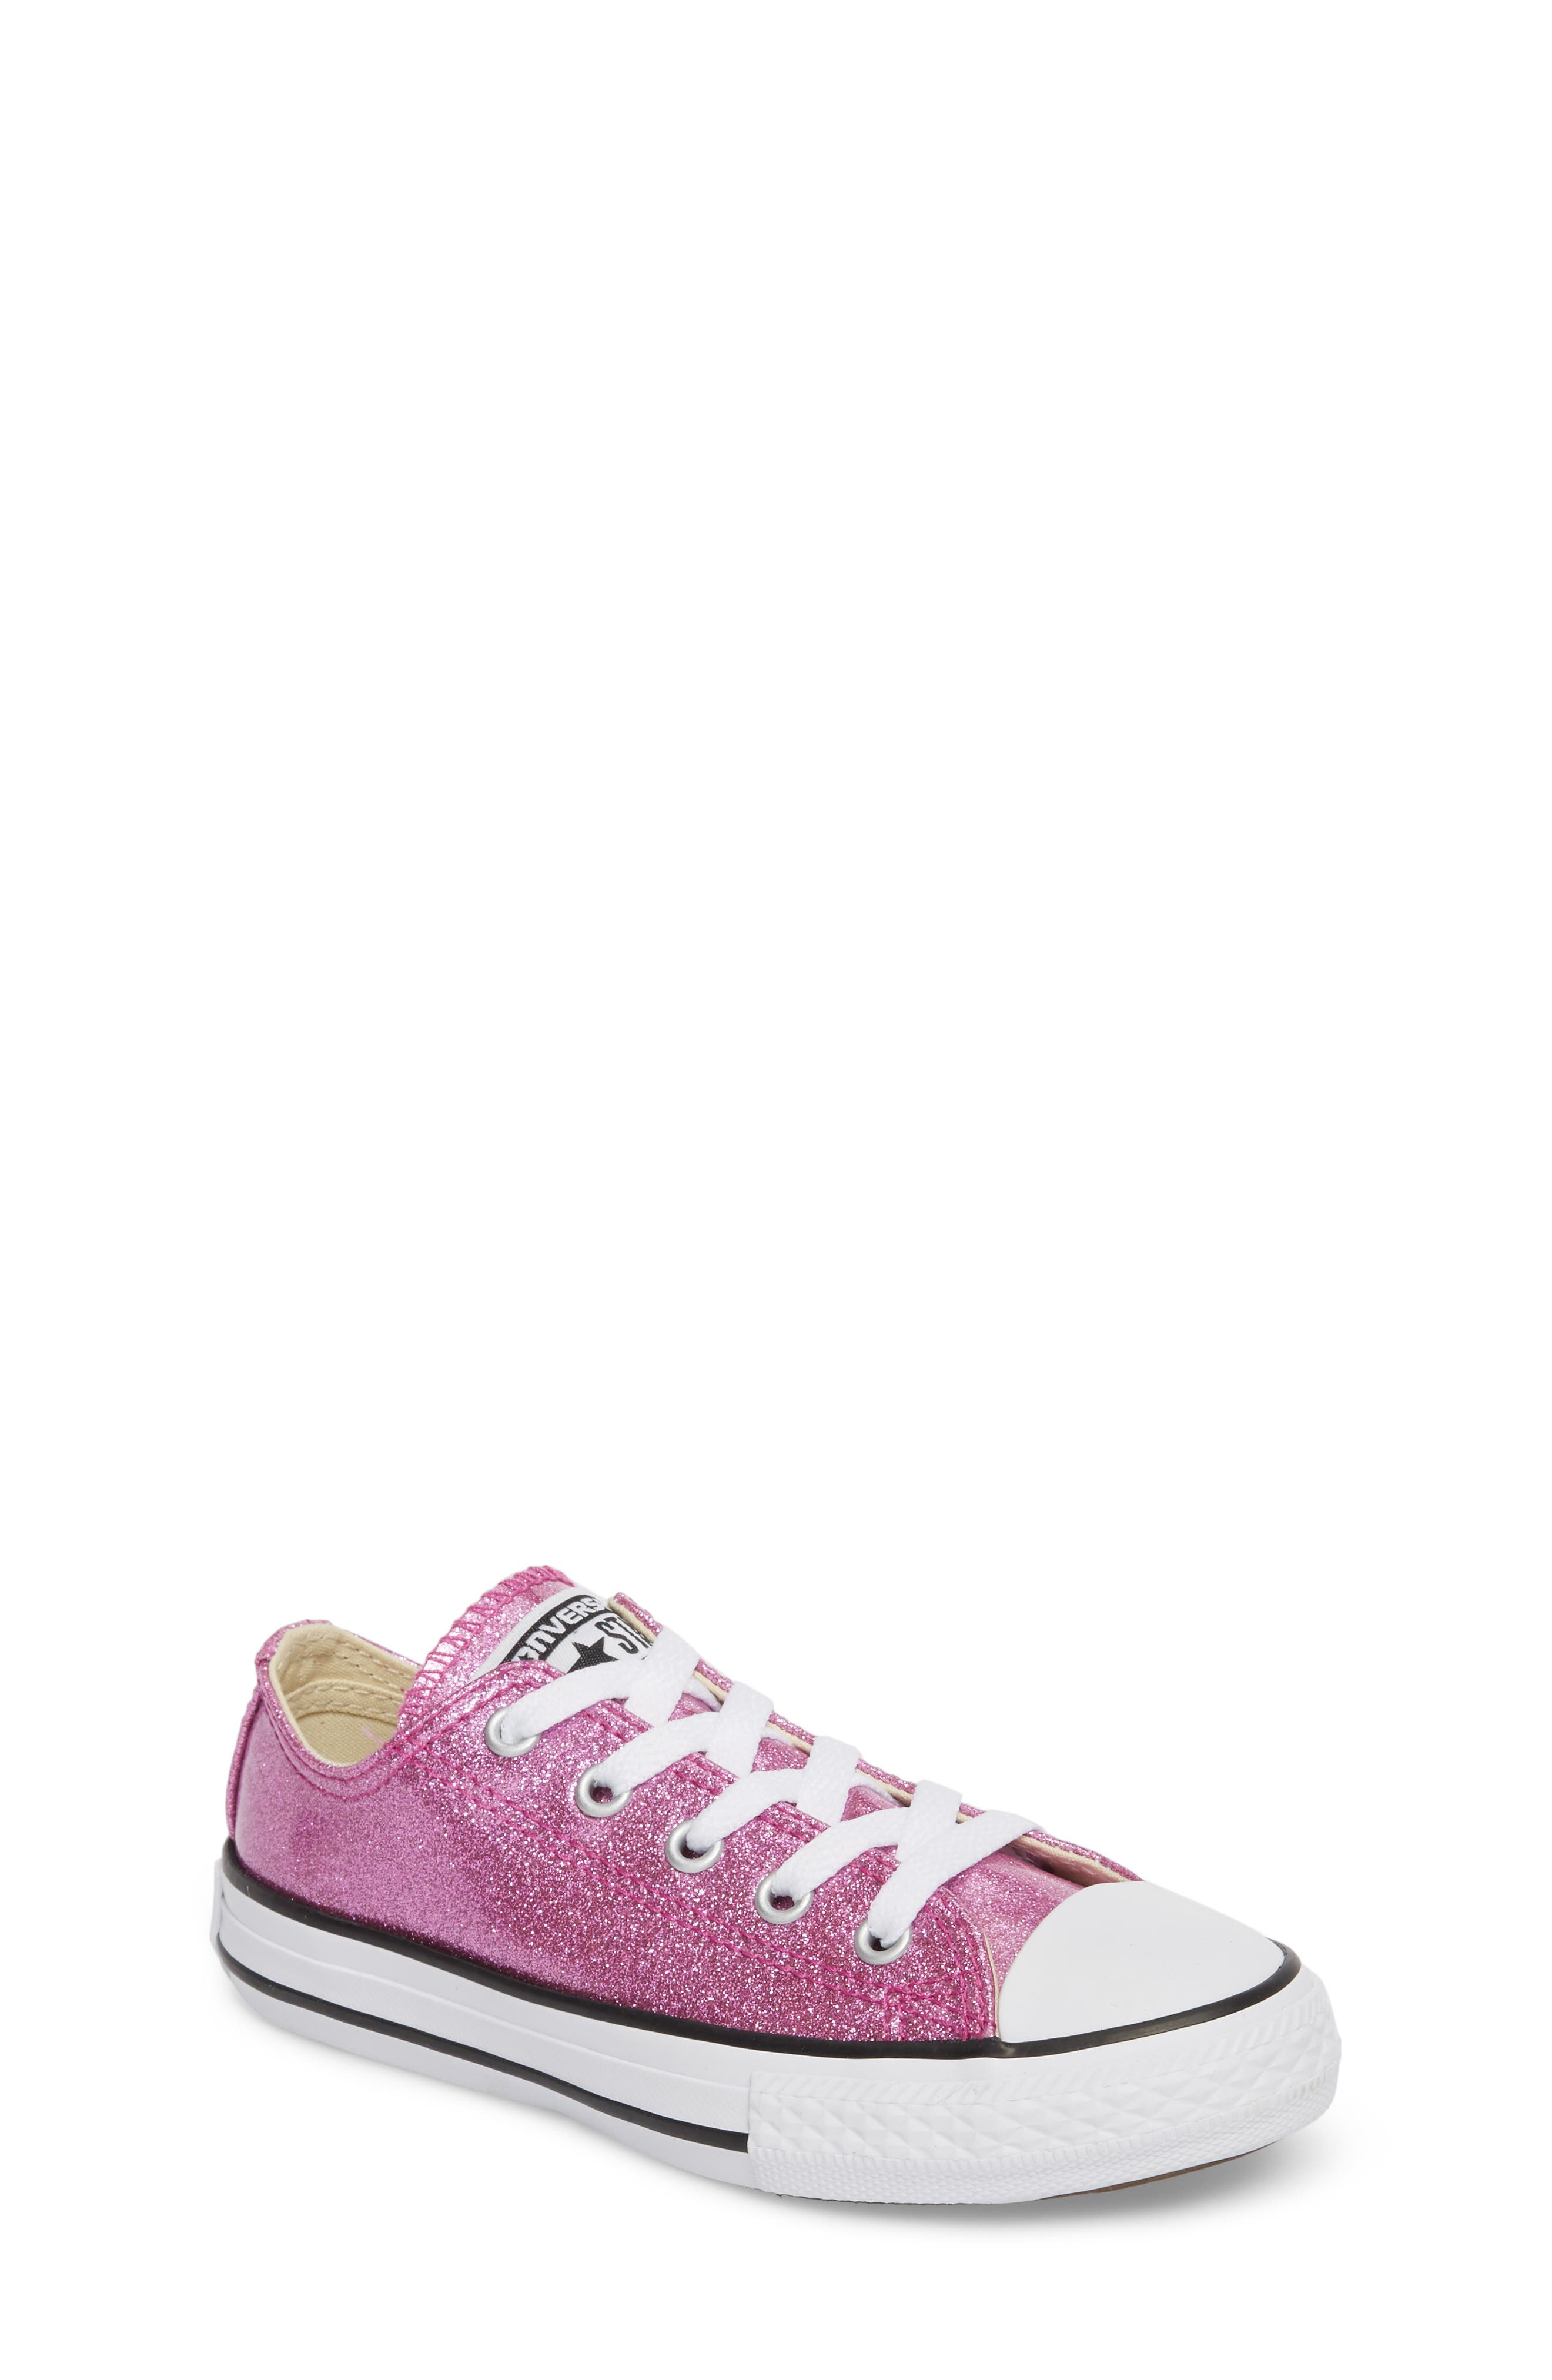 All Star<sup>®</sup> Seasonal Glitter OX Low Top Sneaker,                             Main thumbnail 1, color,                             Bright Violet